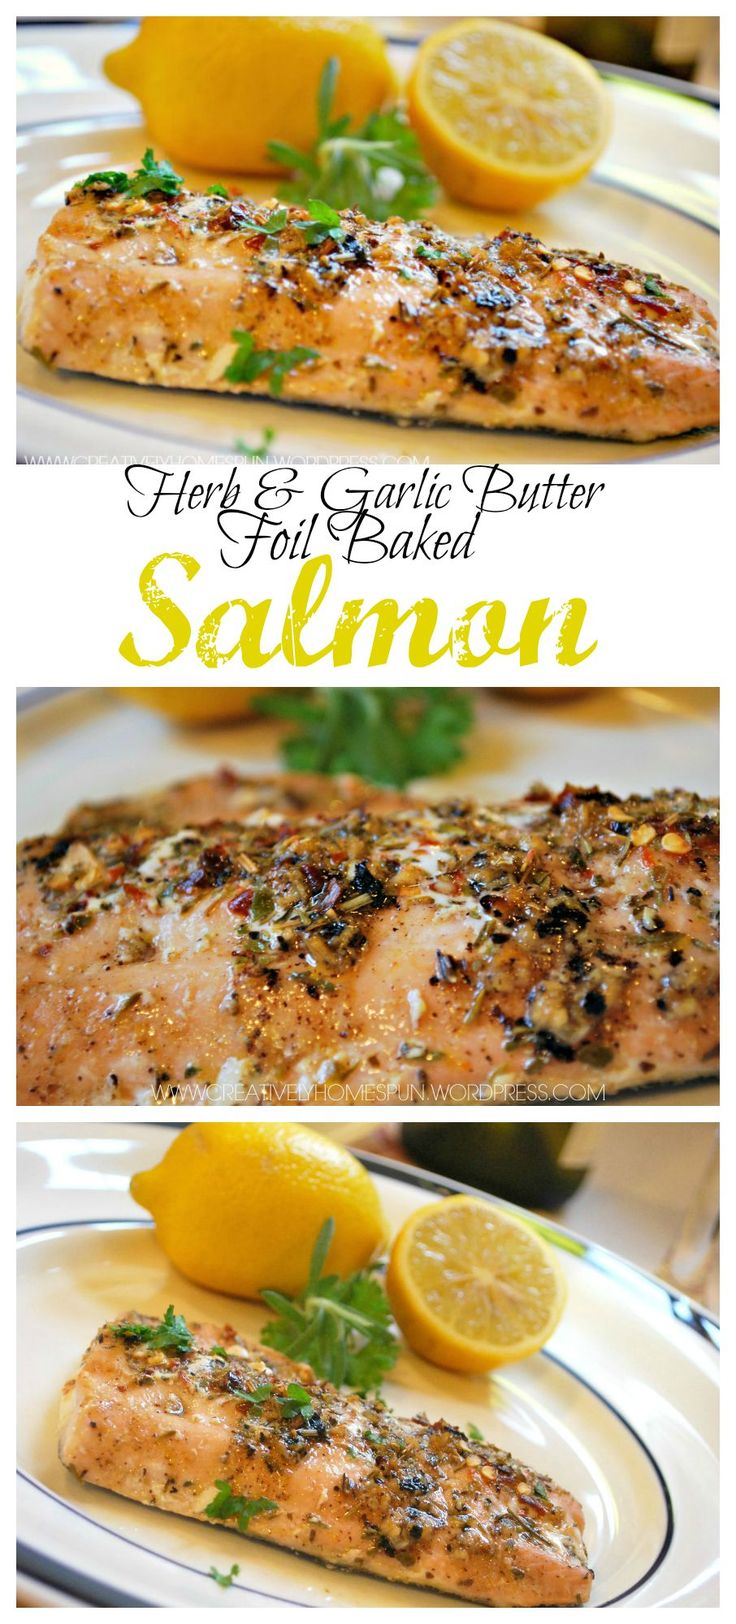 Herb & Garlic Butter Foil Baked Salmon